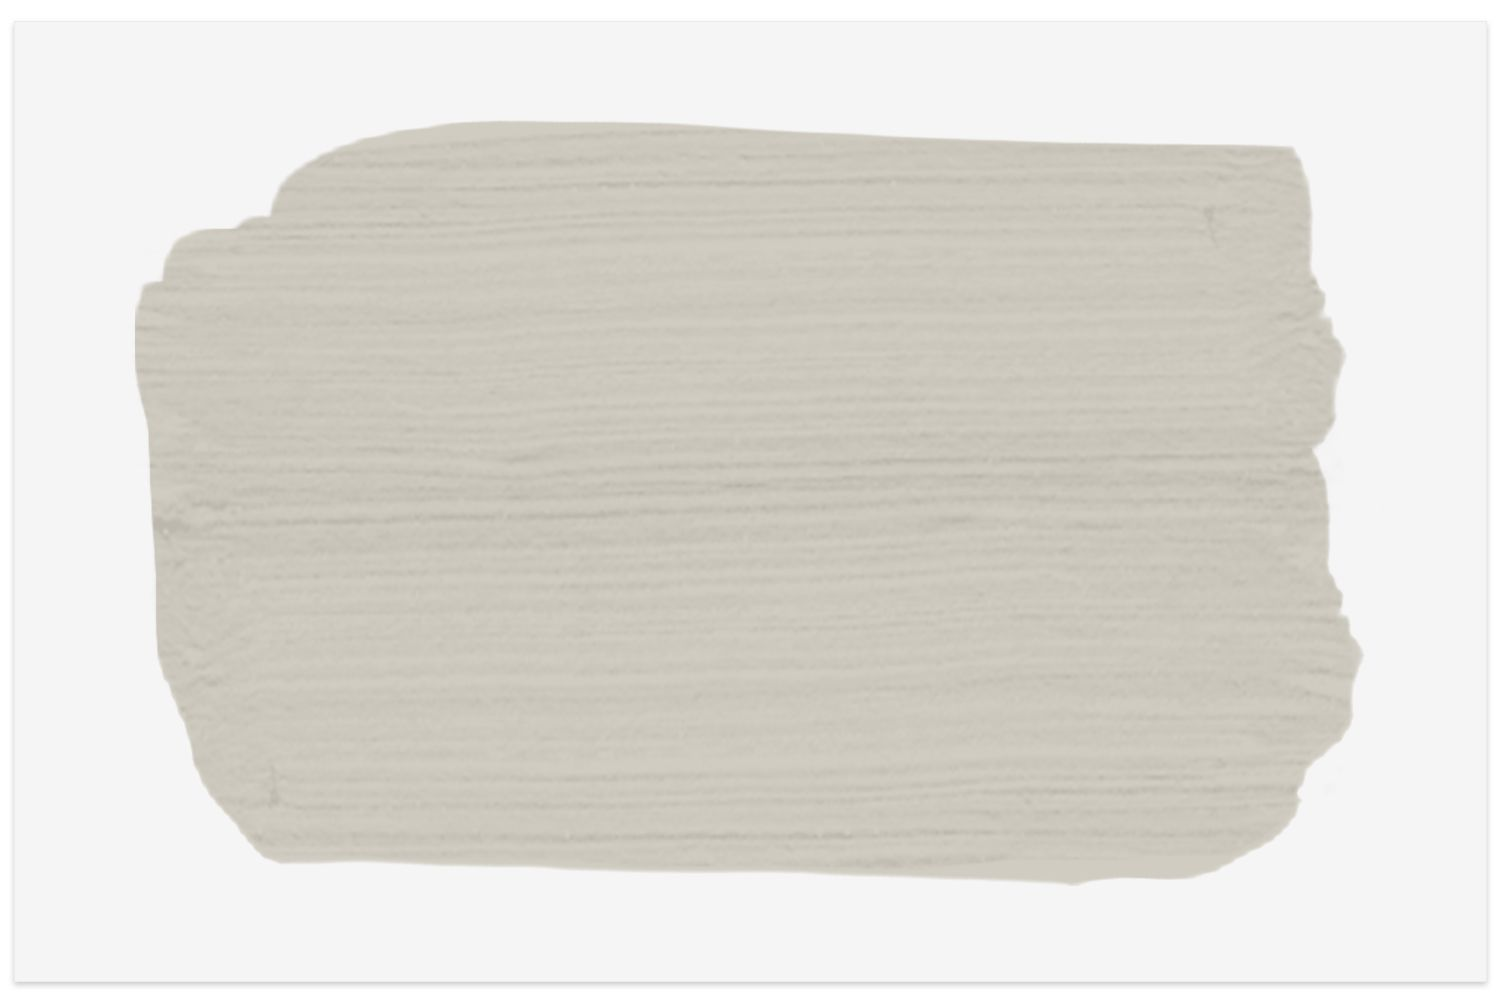 PPG Paints Whiskers PPG1025-3 paint swatch